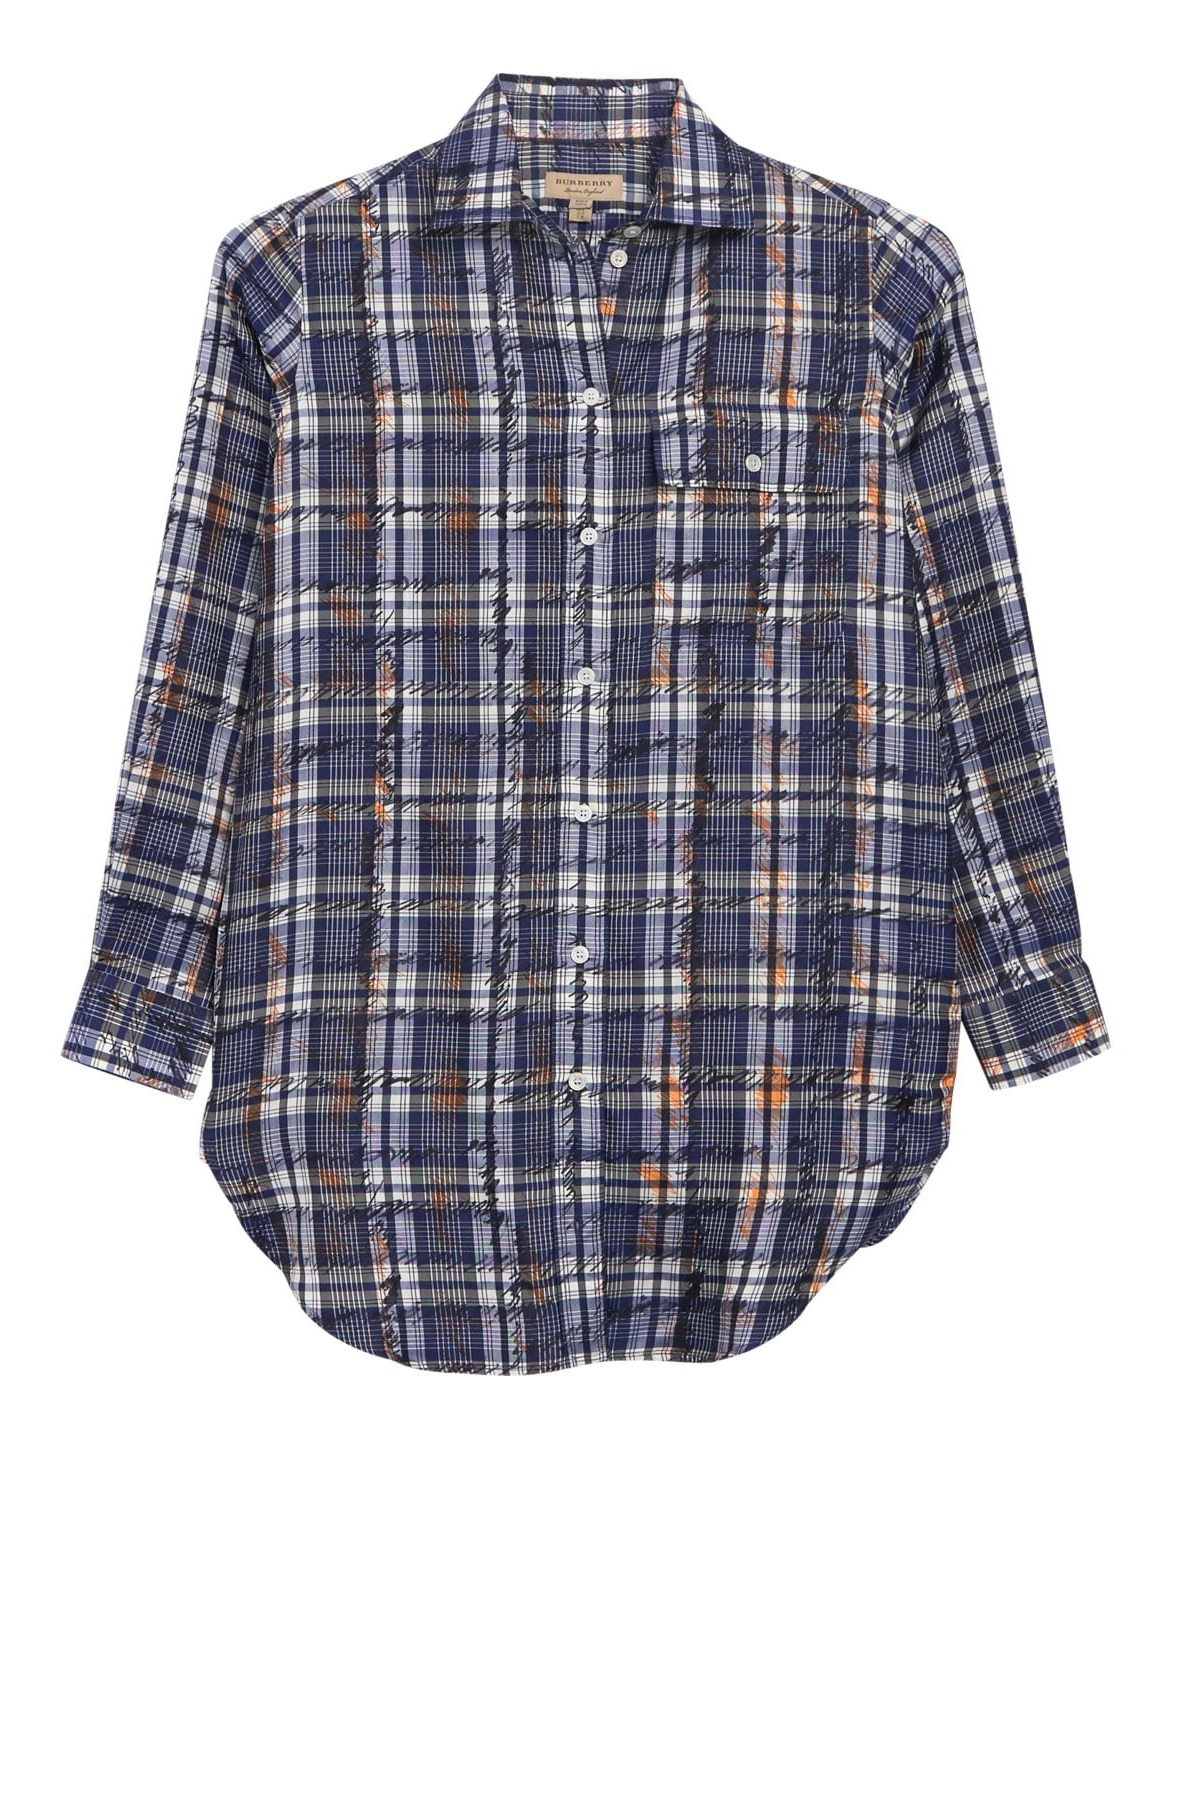 Burberry Chava Scribble Check Silk Shirt In Blue